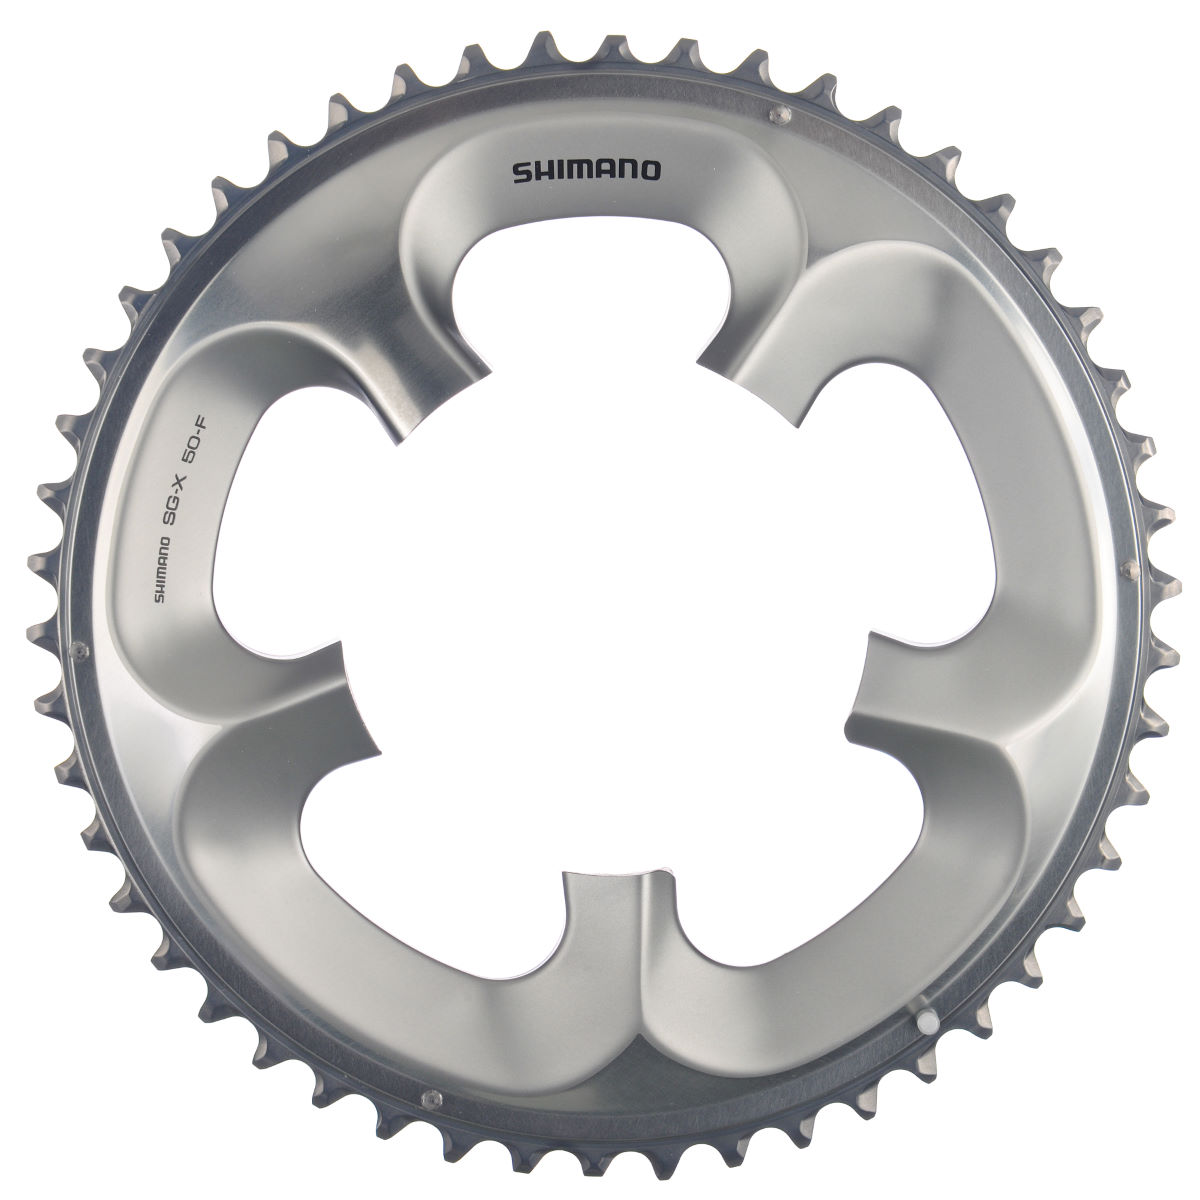 Shimano Ultegra Fc6750 10sp Compact Chainrings - 34t 10 Speed Grey